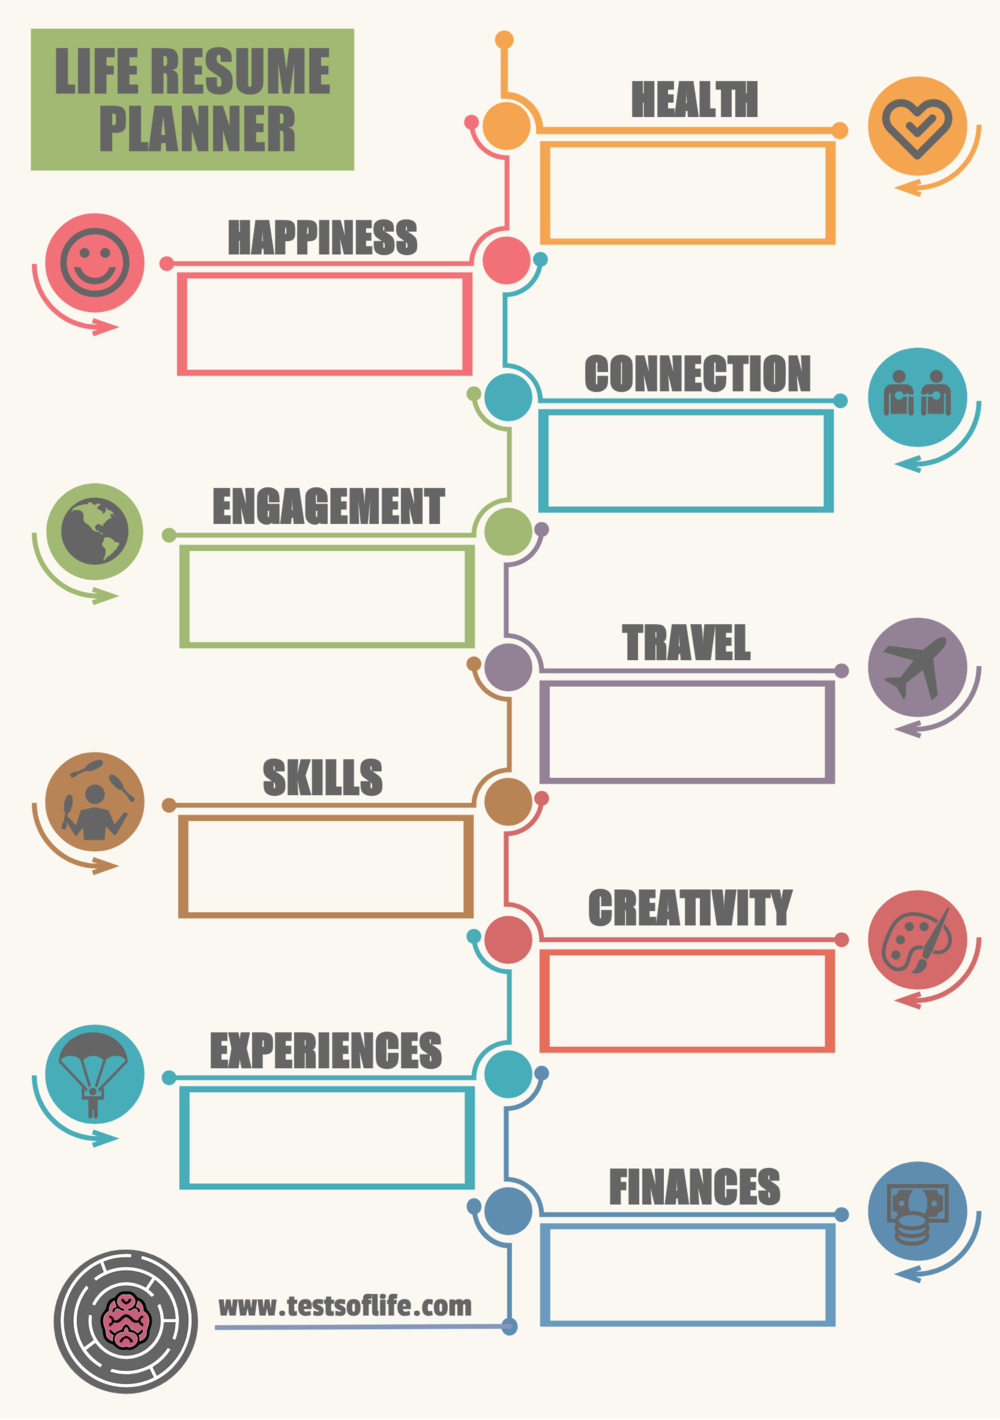 Build Resume | Build Your Life Resume Planner Infographic Tests Of Life